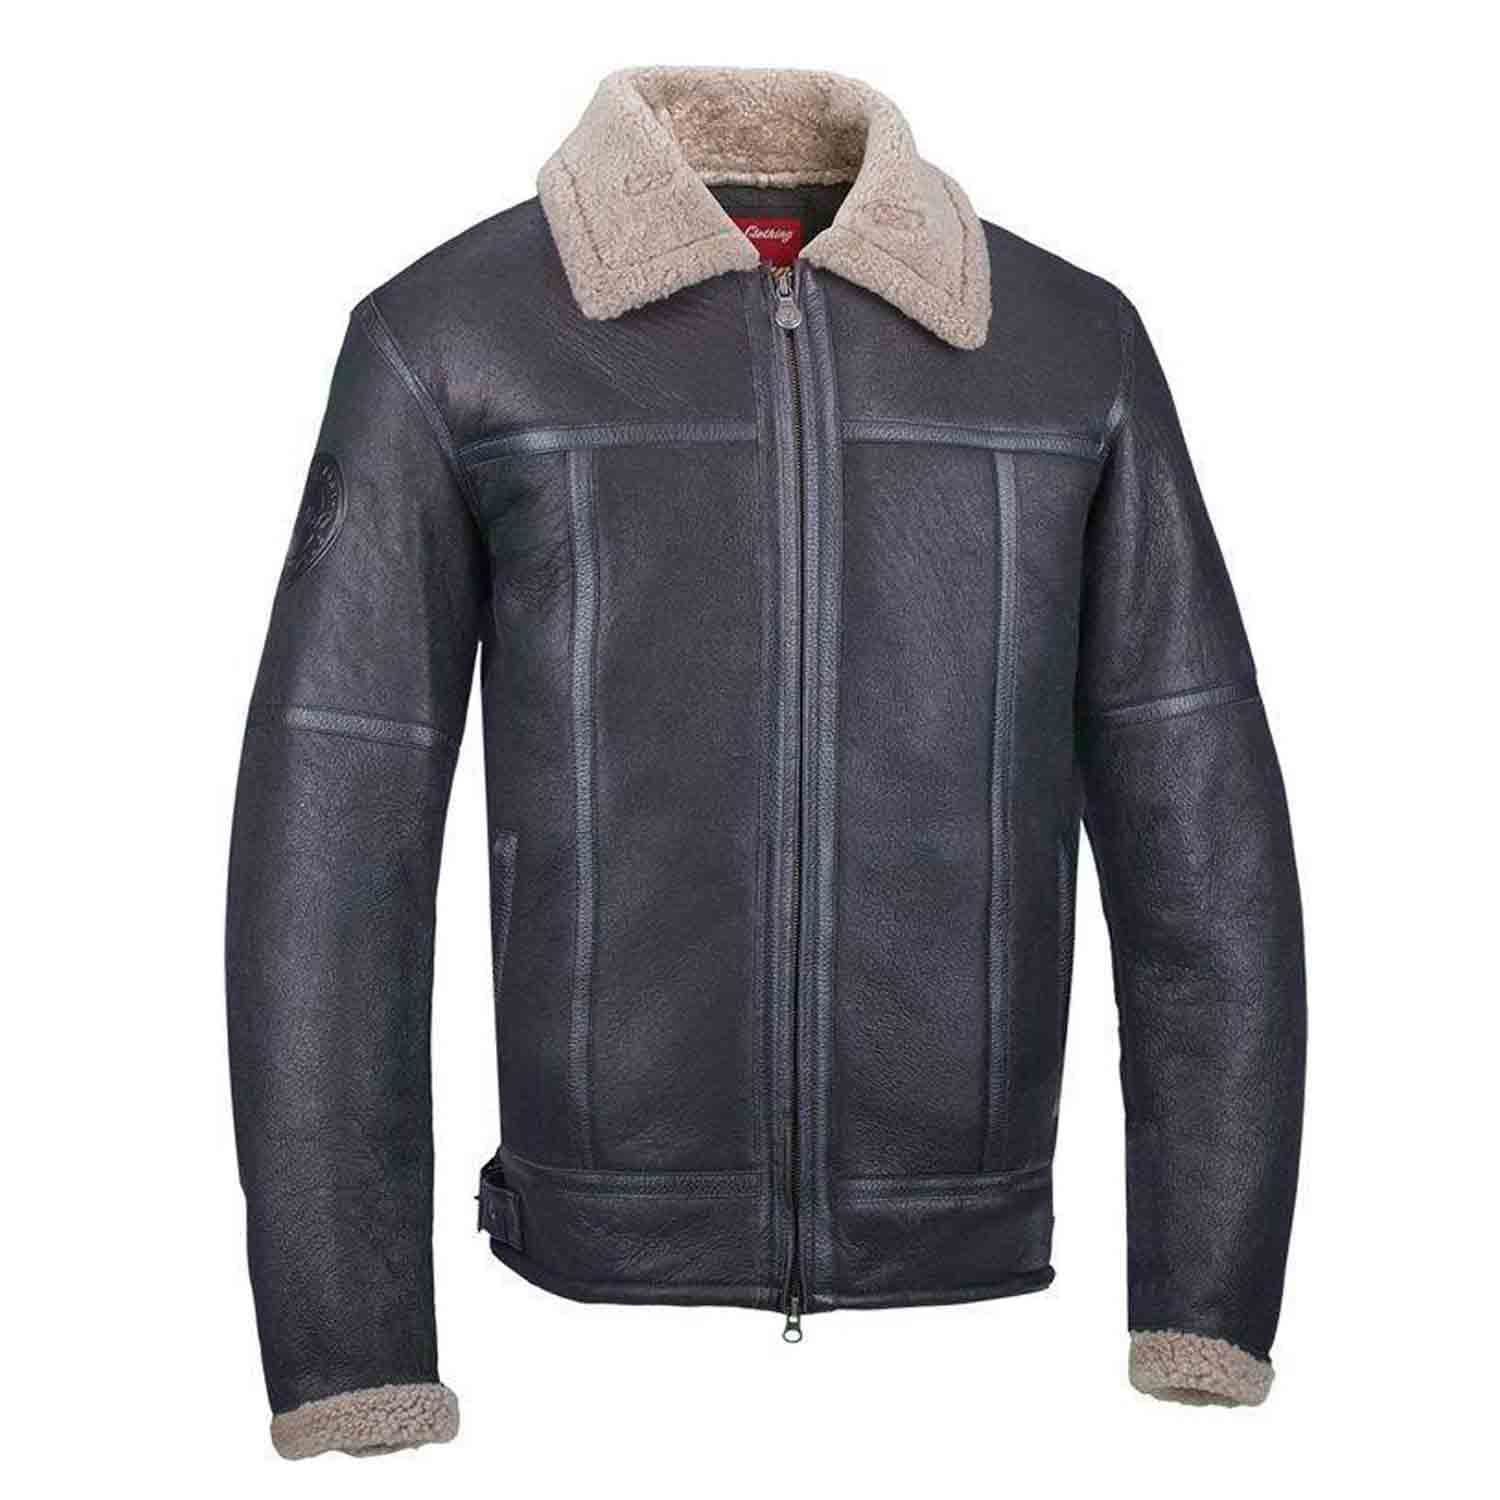 Indian Motorcycle New Oem Men S Leather Shearling Riding Jacket Small 28638260 Walmart Com Walmart Com